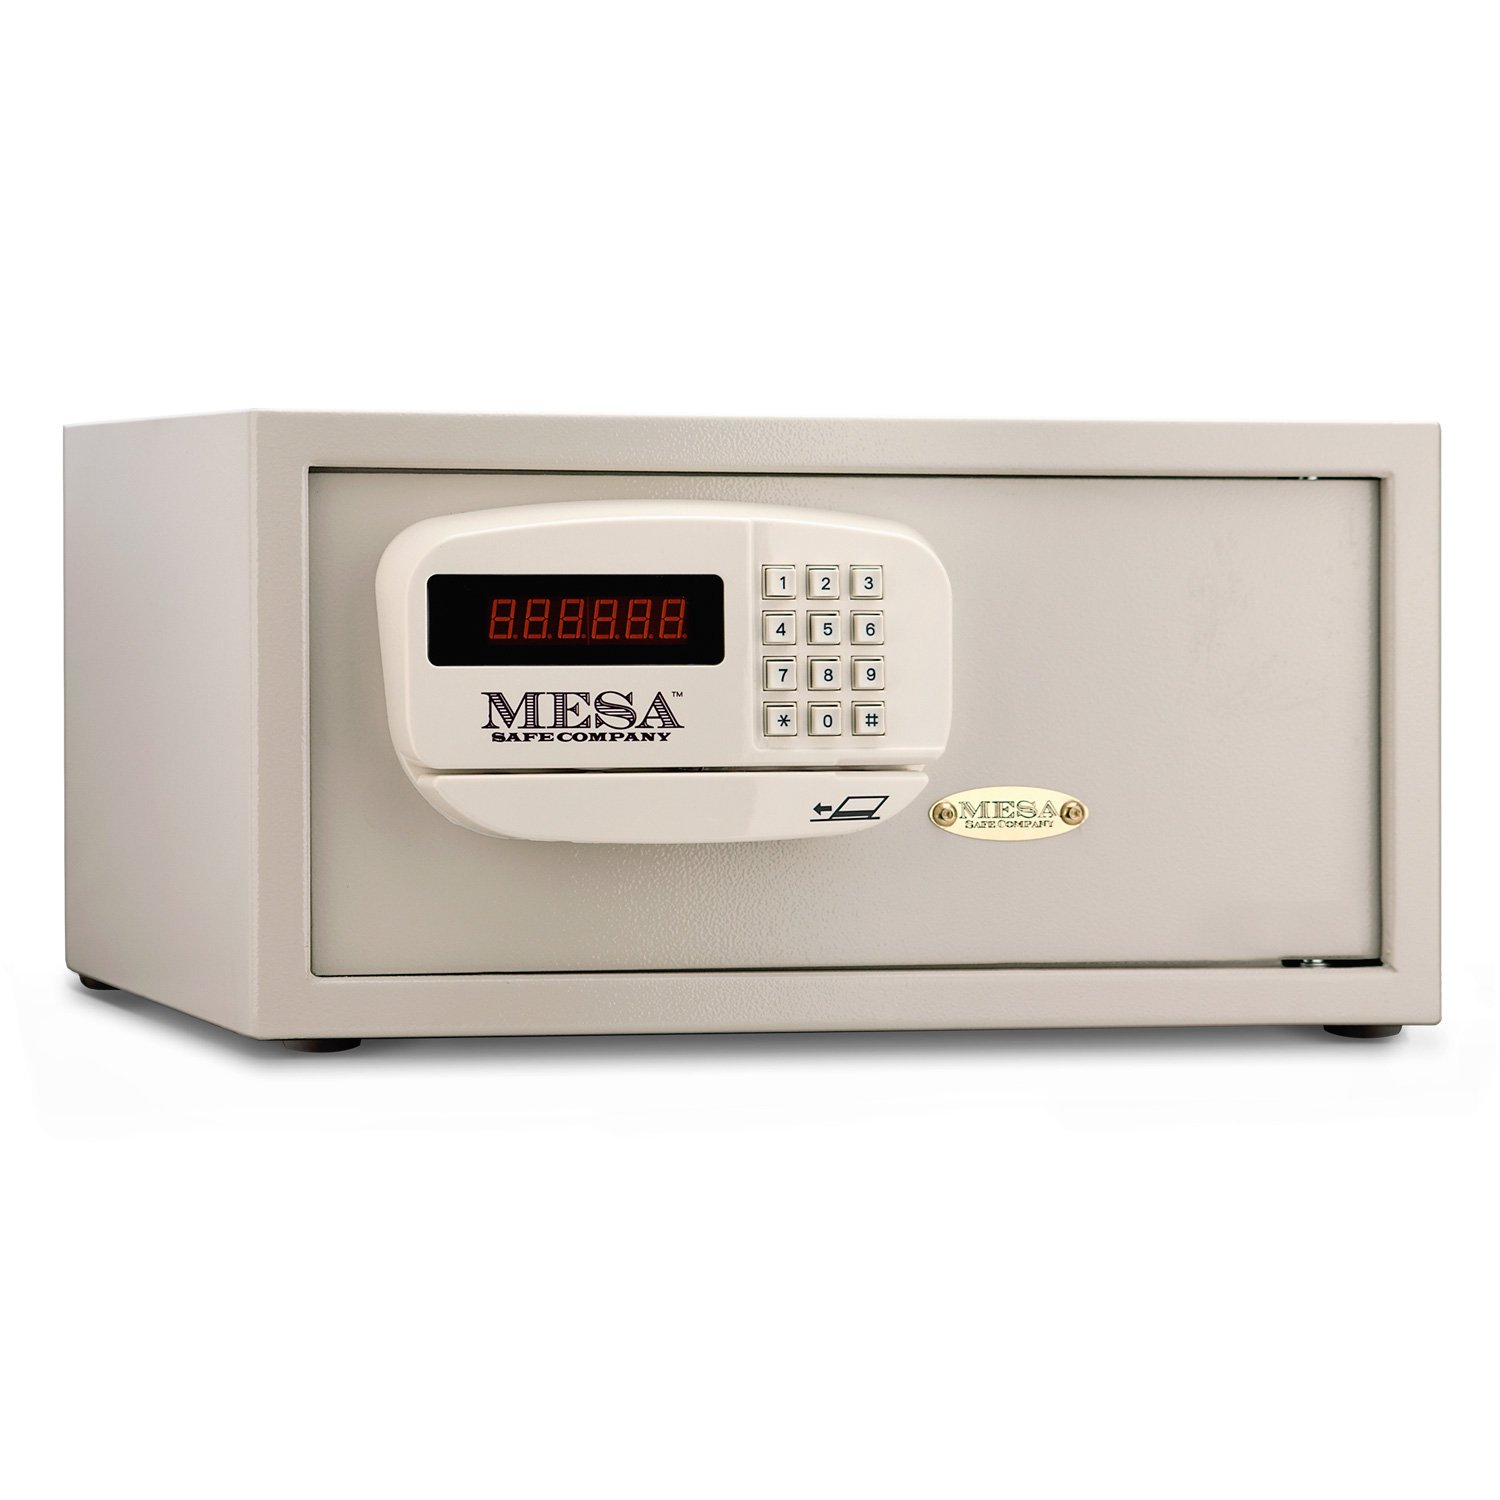 Mesa Safe Company Model MHRC916E Residential and Hotel Electronic Burglary Safe, Cream by Mesa Safe